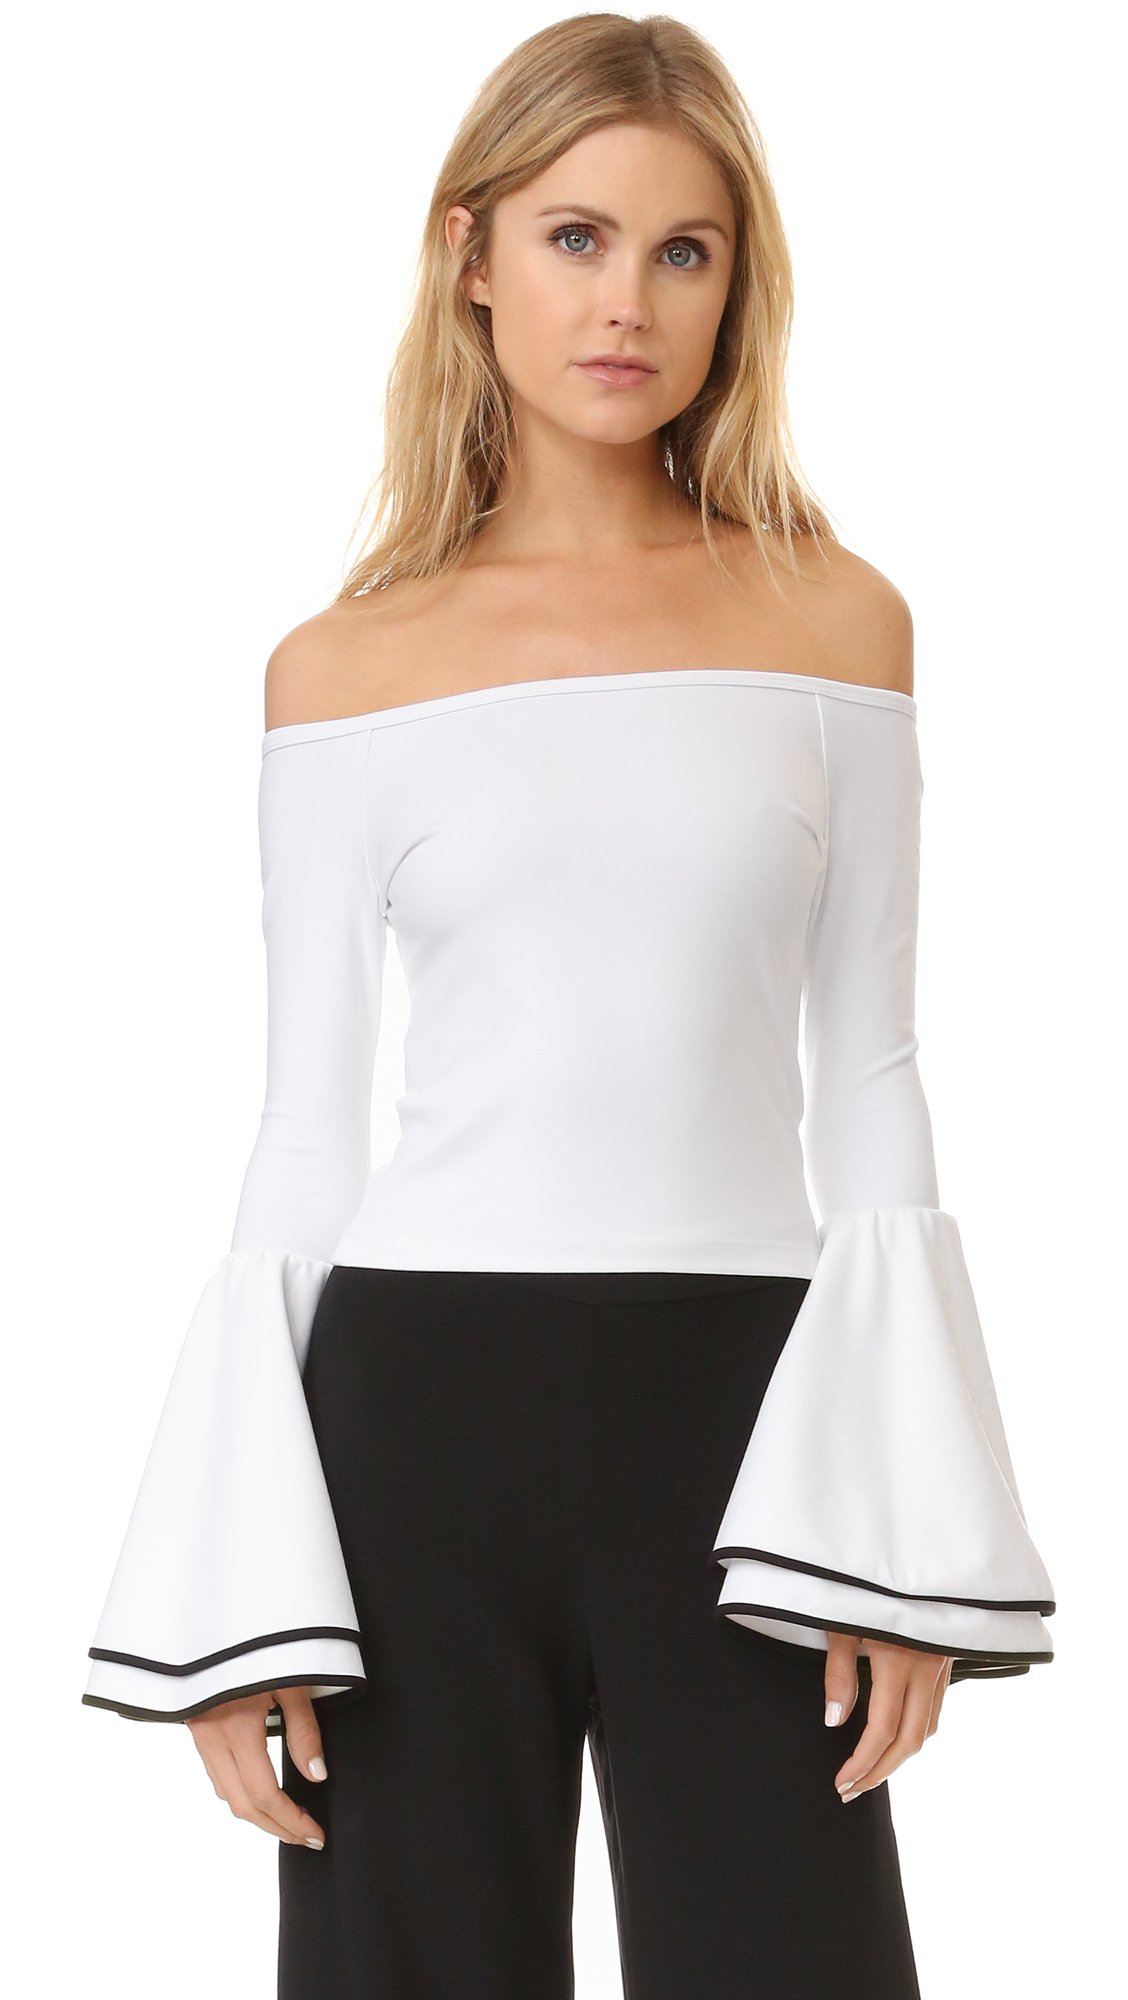 Contrast trim accents the layered bell sleeves on this Torn by Ronny Kobo crop top. Off shoulder neckline. Fabric: Ponte jersey. 60% rayon/33% nylon/7% lycra spandex. Dry clean. Made in the USA. Measurements Length: 12.5in / 32cm, from